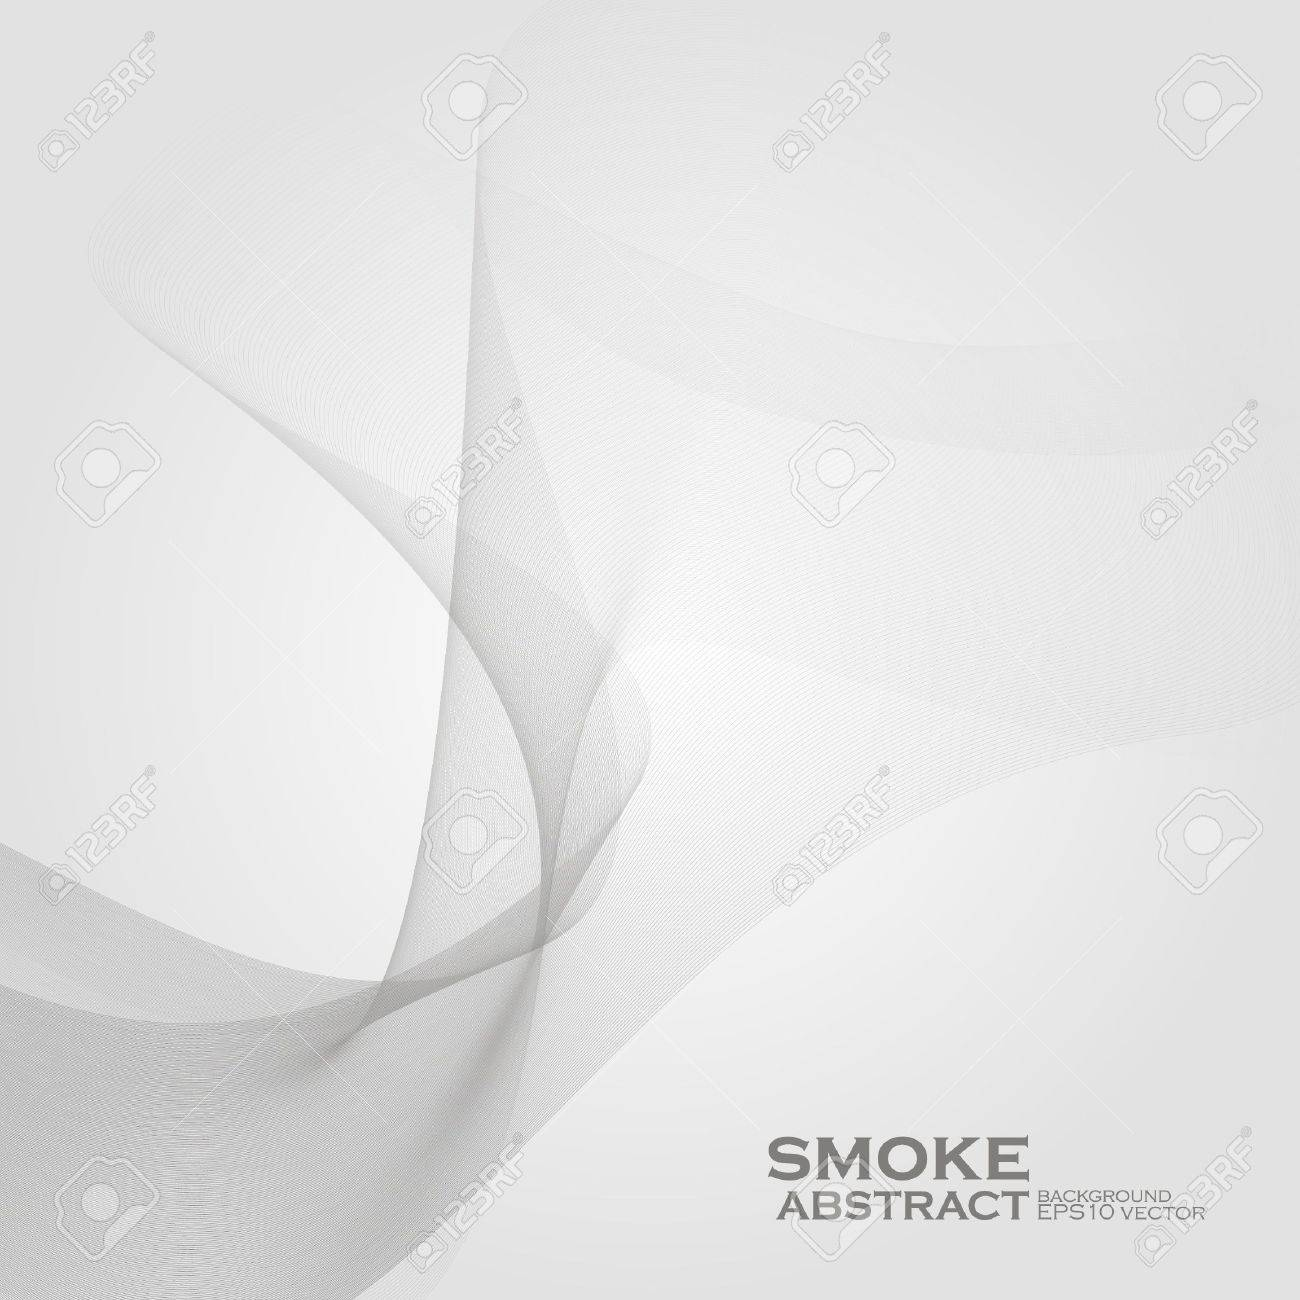 Smoke background. Abstract  vector illustration Stock Vector - 13195524